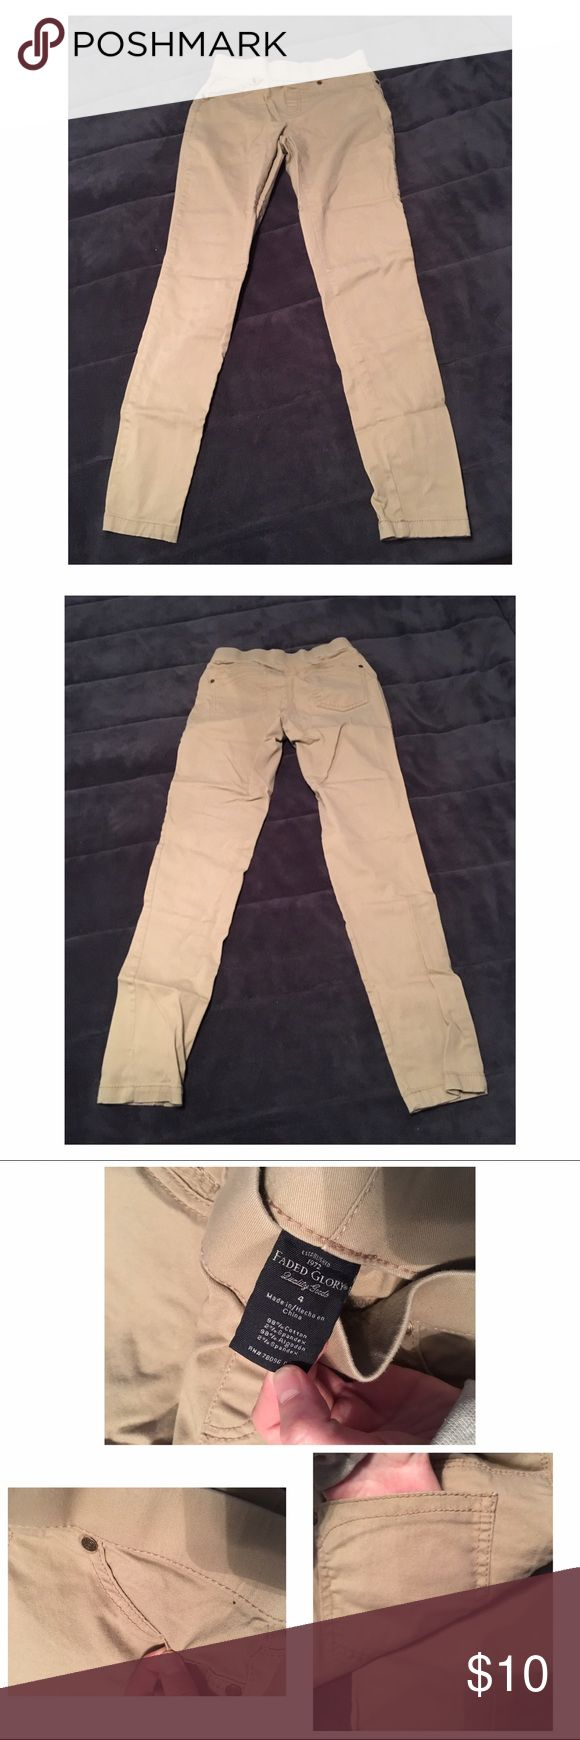 Skinny Khaki Pants Only worn a few times great condition! 😊 Faded Glory Pants Skinny